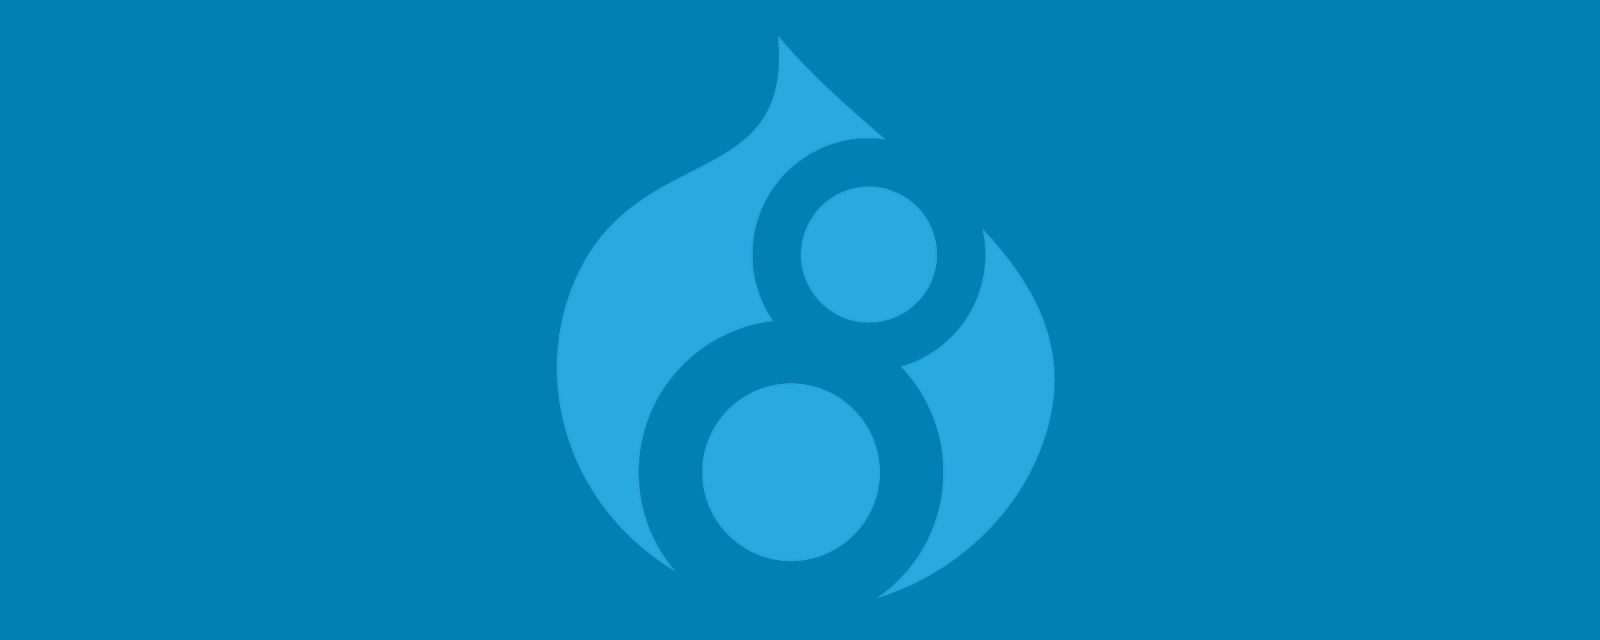 Build a Quick RESTful View in Drupal 8 - KevinBlanco io - Medium